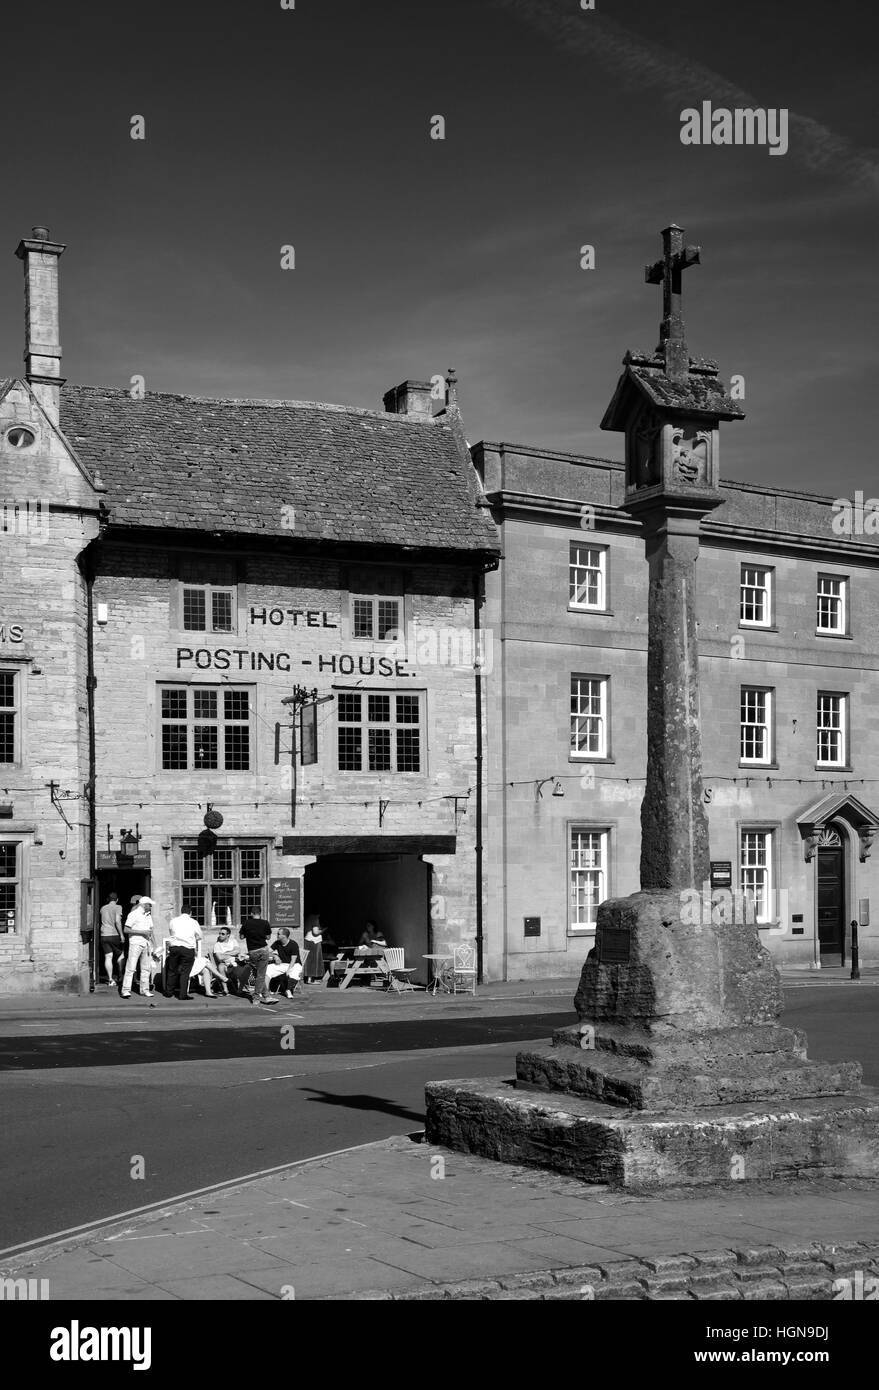 market square, Stow on the Wold village, Gloucestershire Cotswolds,England,UK - Stock Image